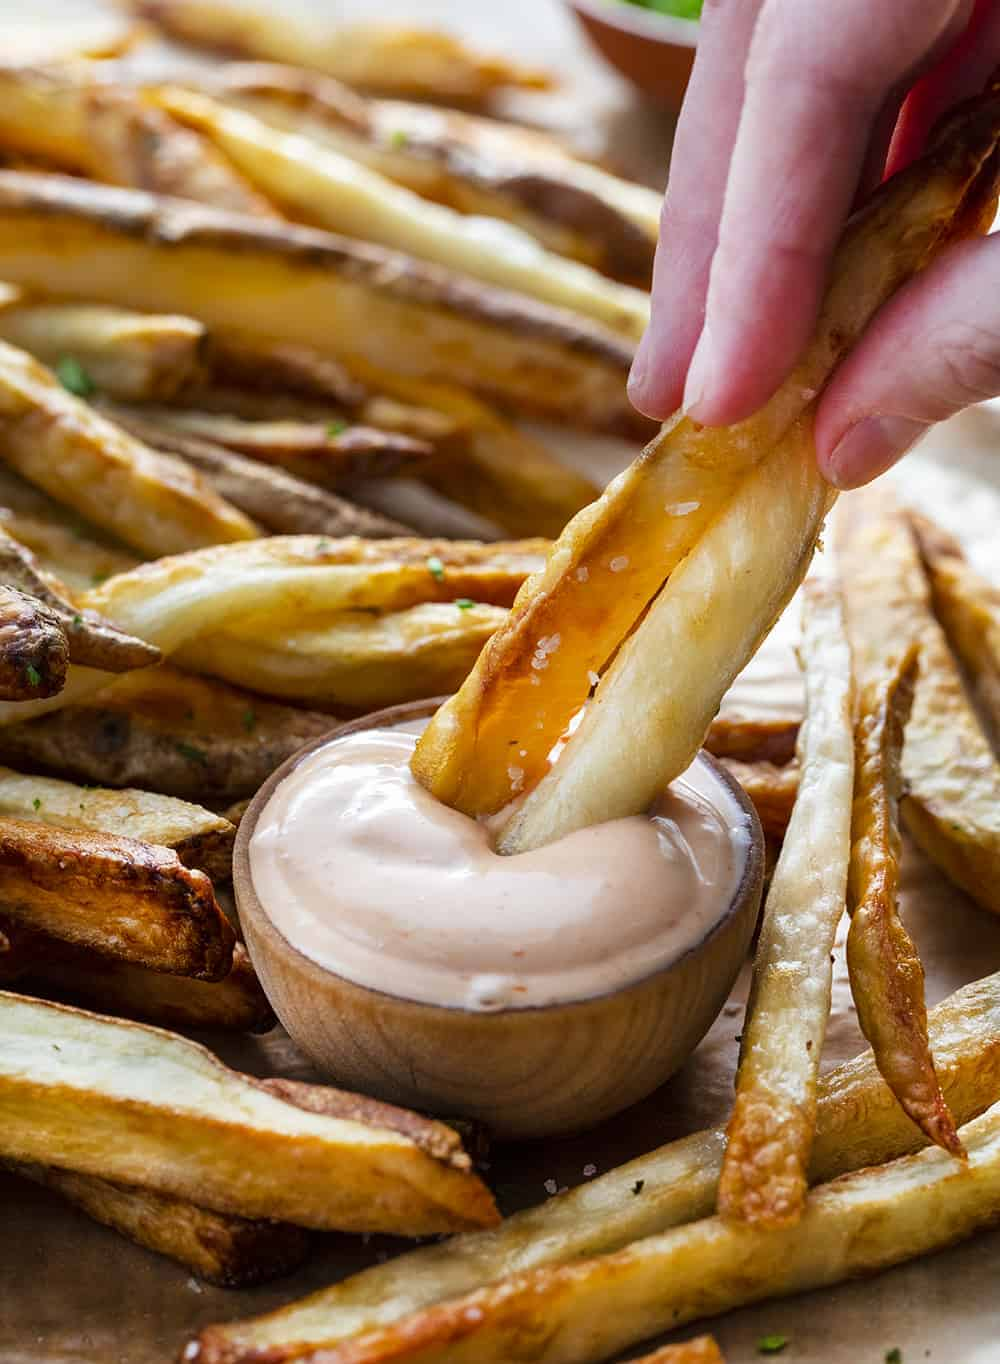 Dipping Air Fryer Salt & Vinegar French Fries into Fry Sauce